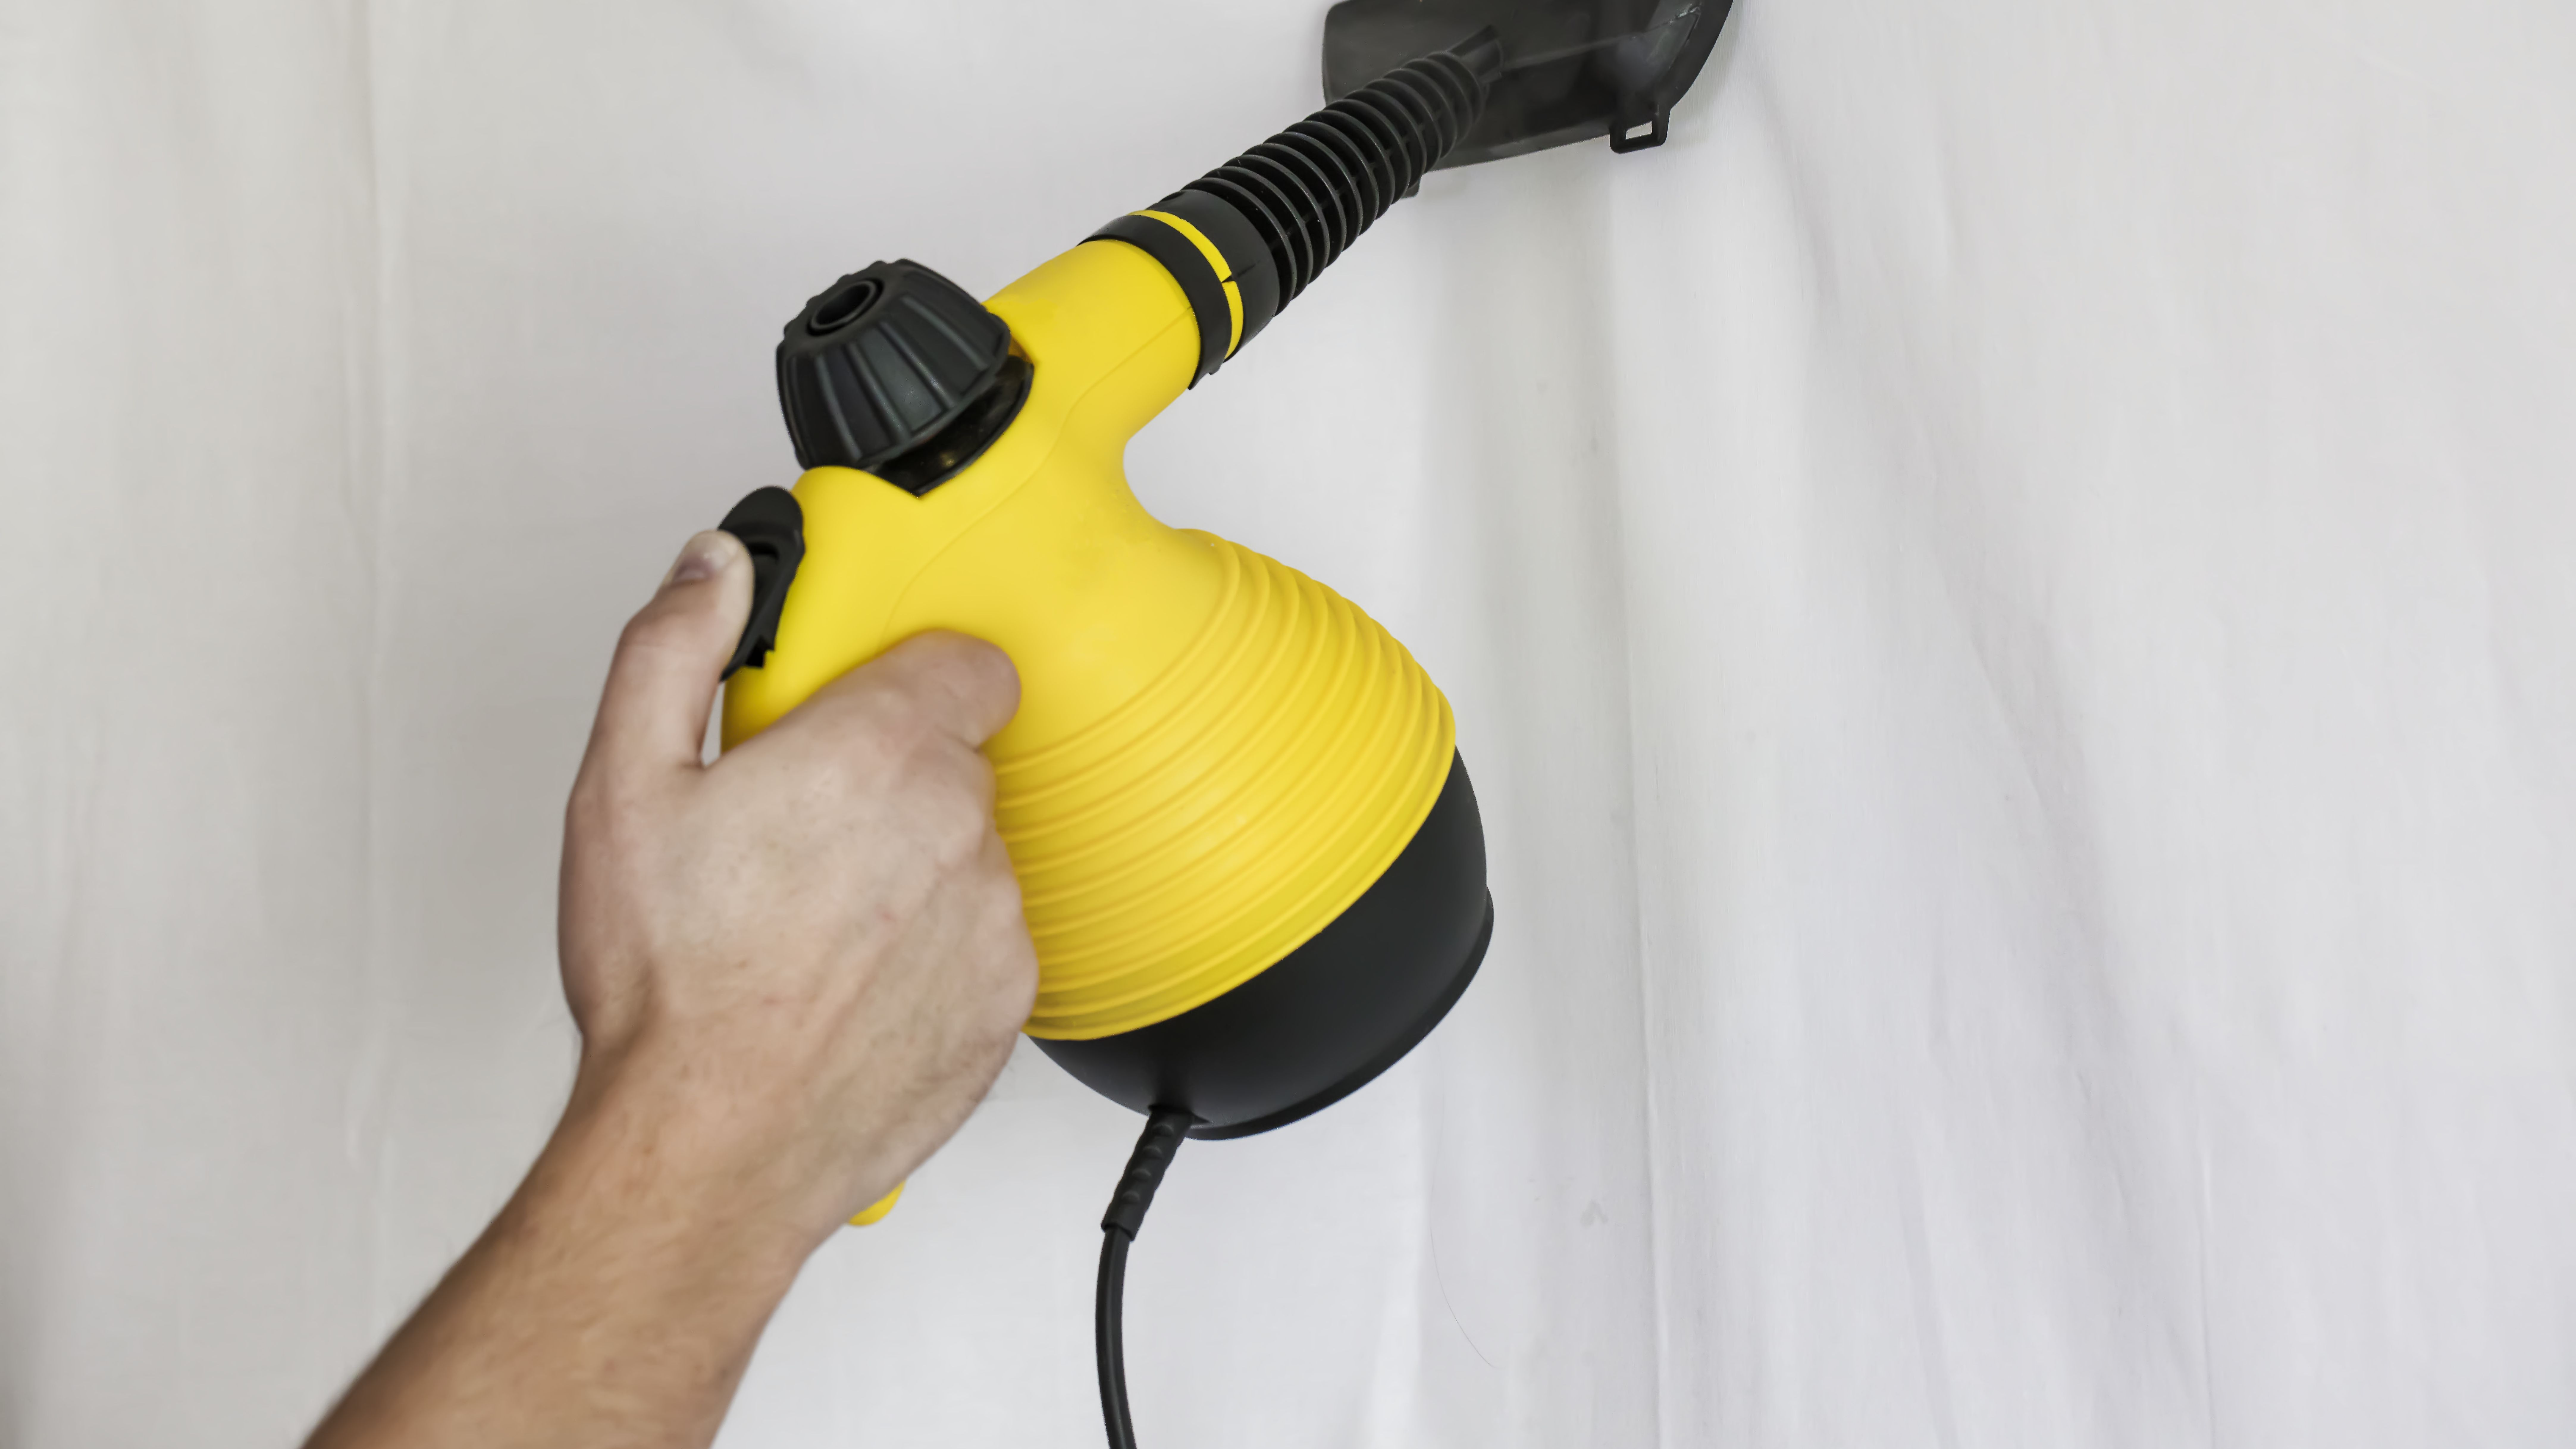 Best Steam Mop 2020 The 7 Best Steam Cleaners of 2019